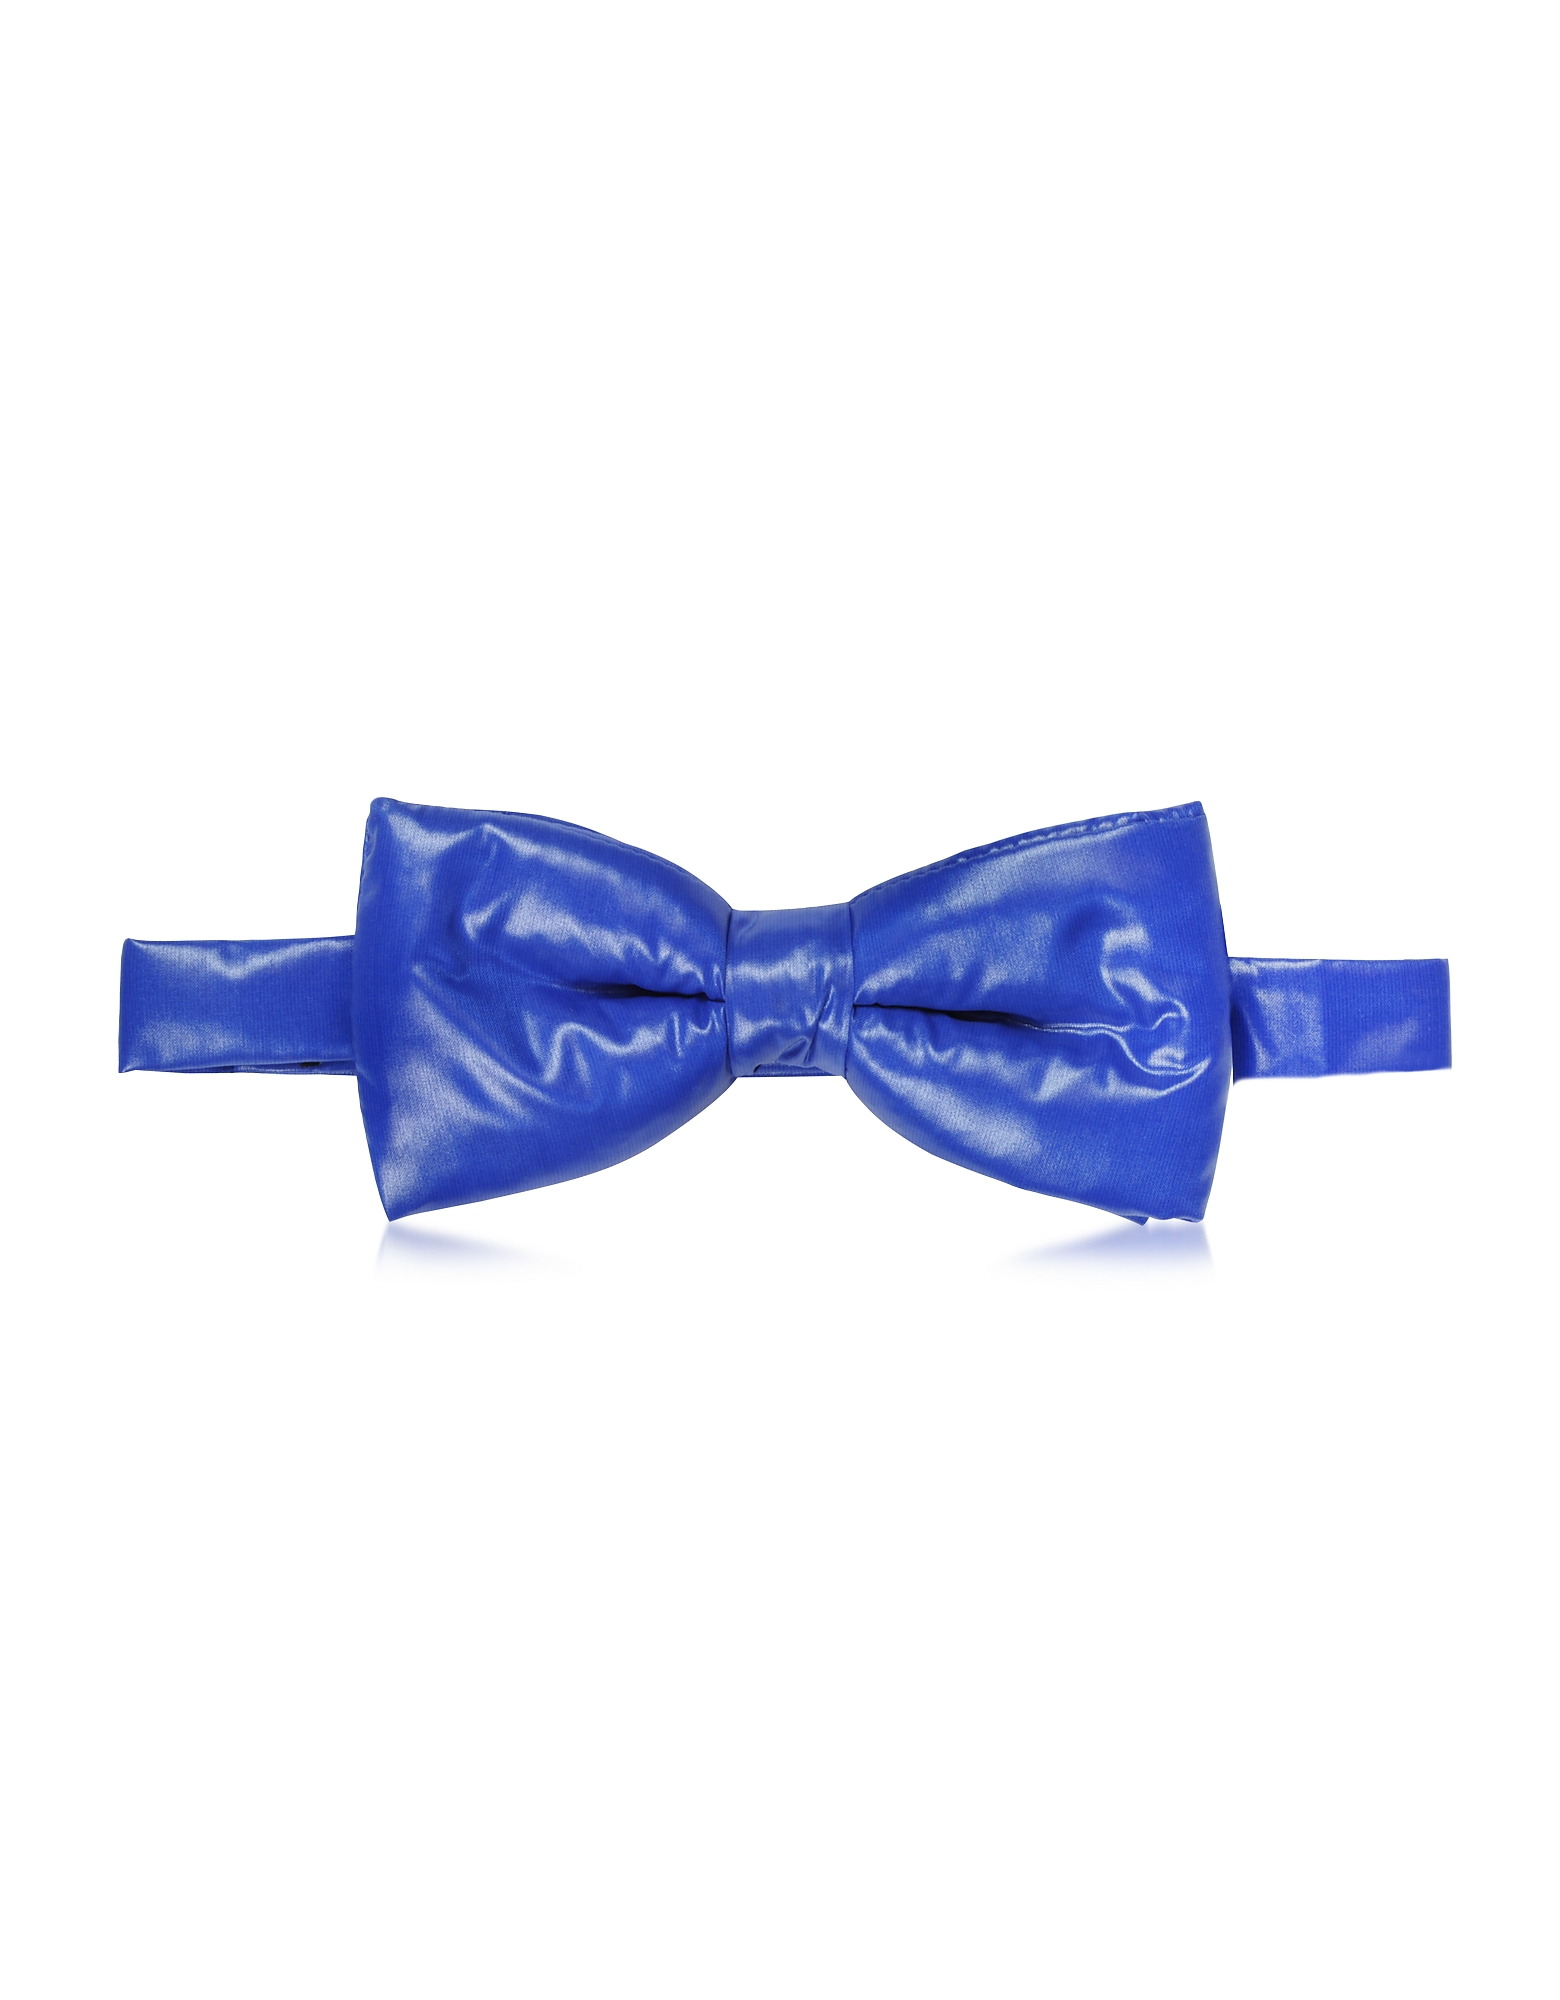 Forzieri Bowties and Cummerbunds, Electric Blue Nylon Puffer Bow Tie